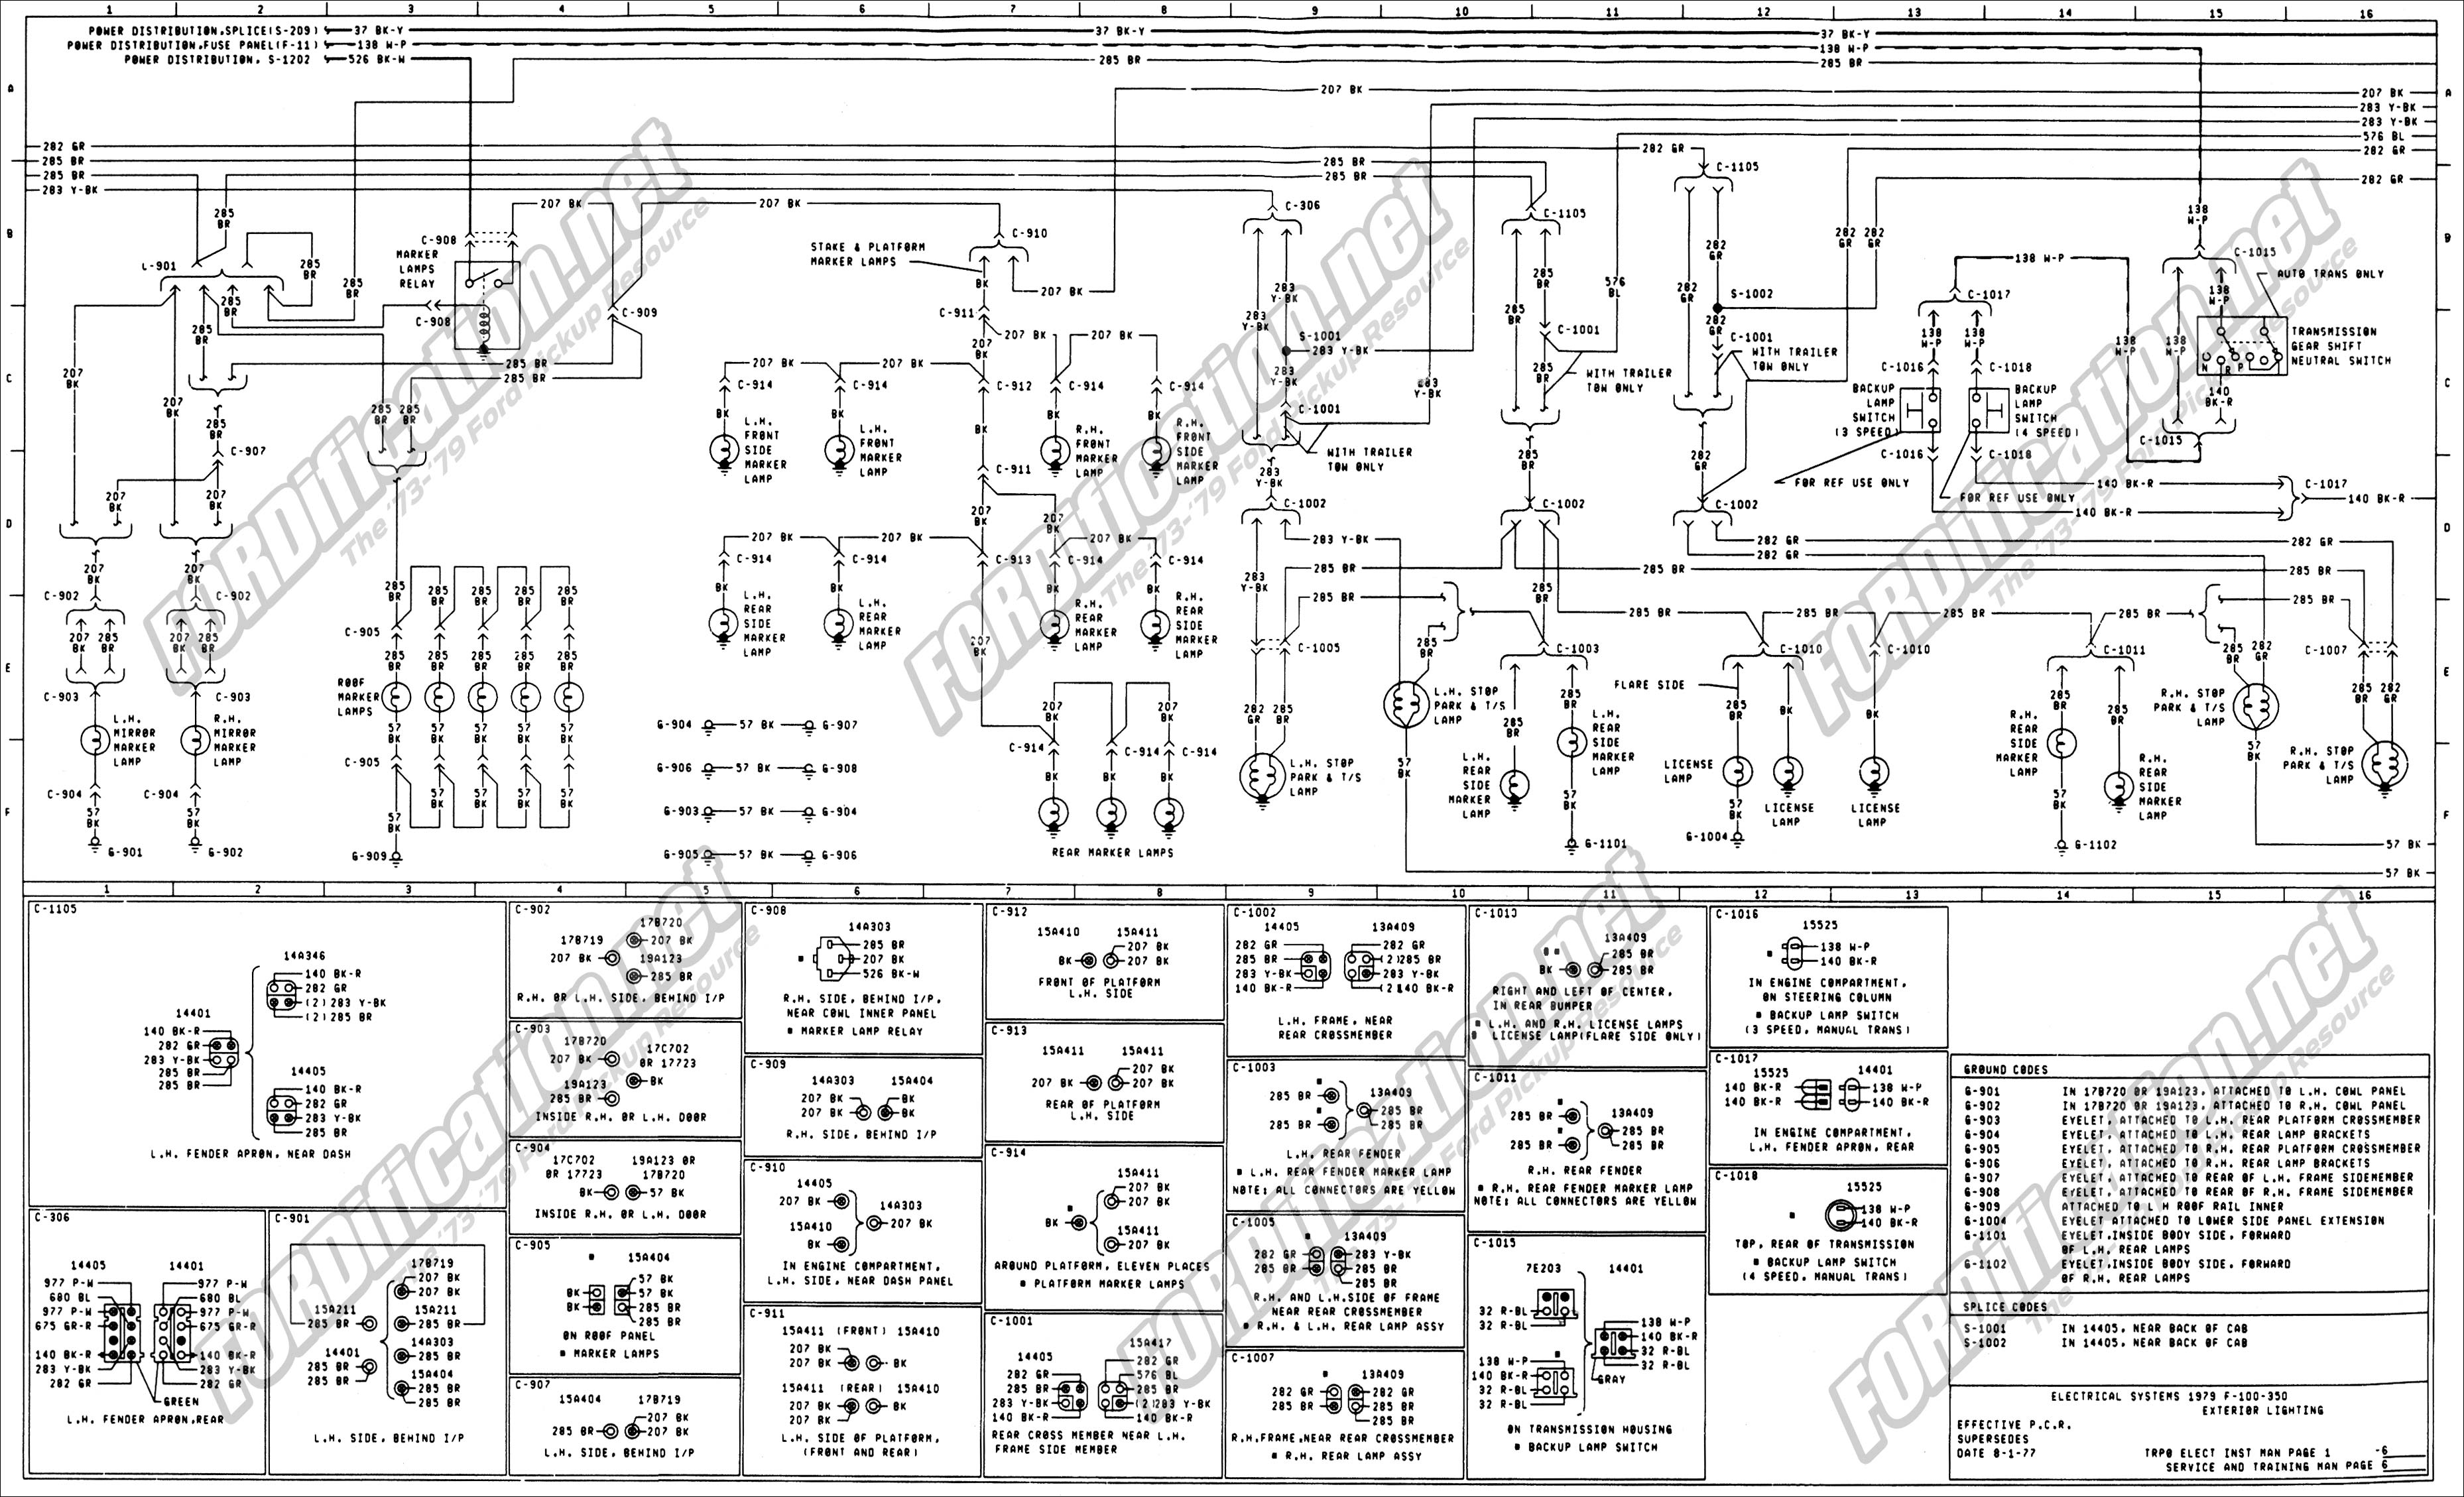 1999 ford f150 ignition switch wiring diagram well pump parts 1973-1979 truck diagrams & schematics - fordification.net